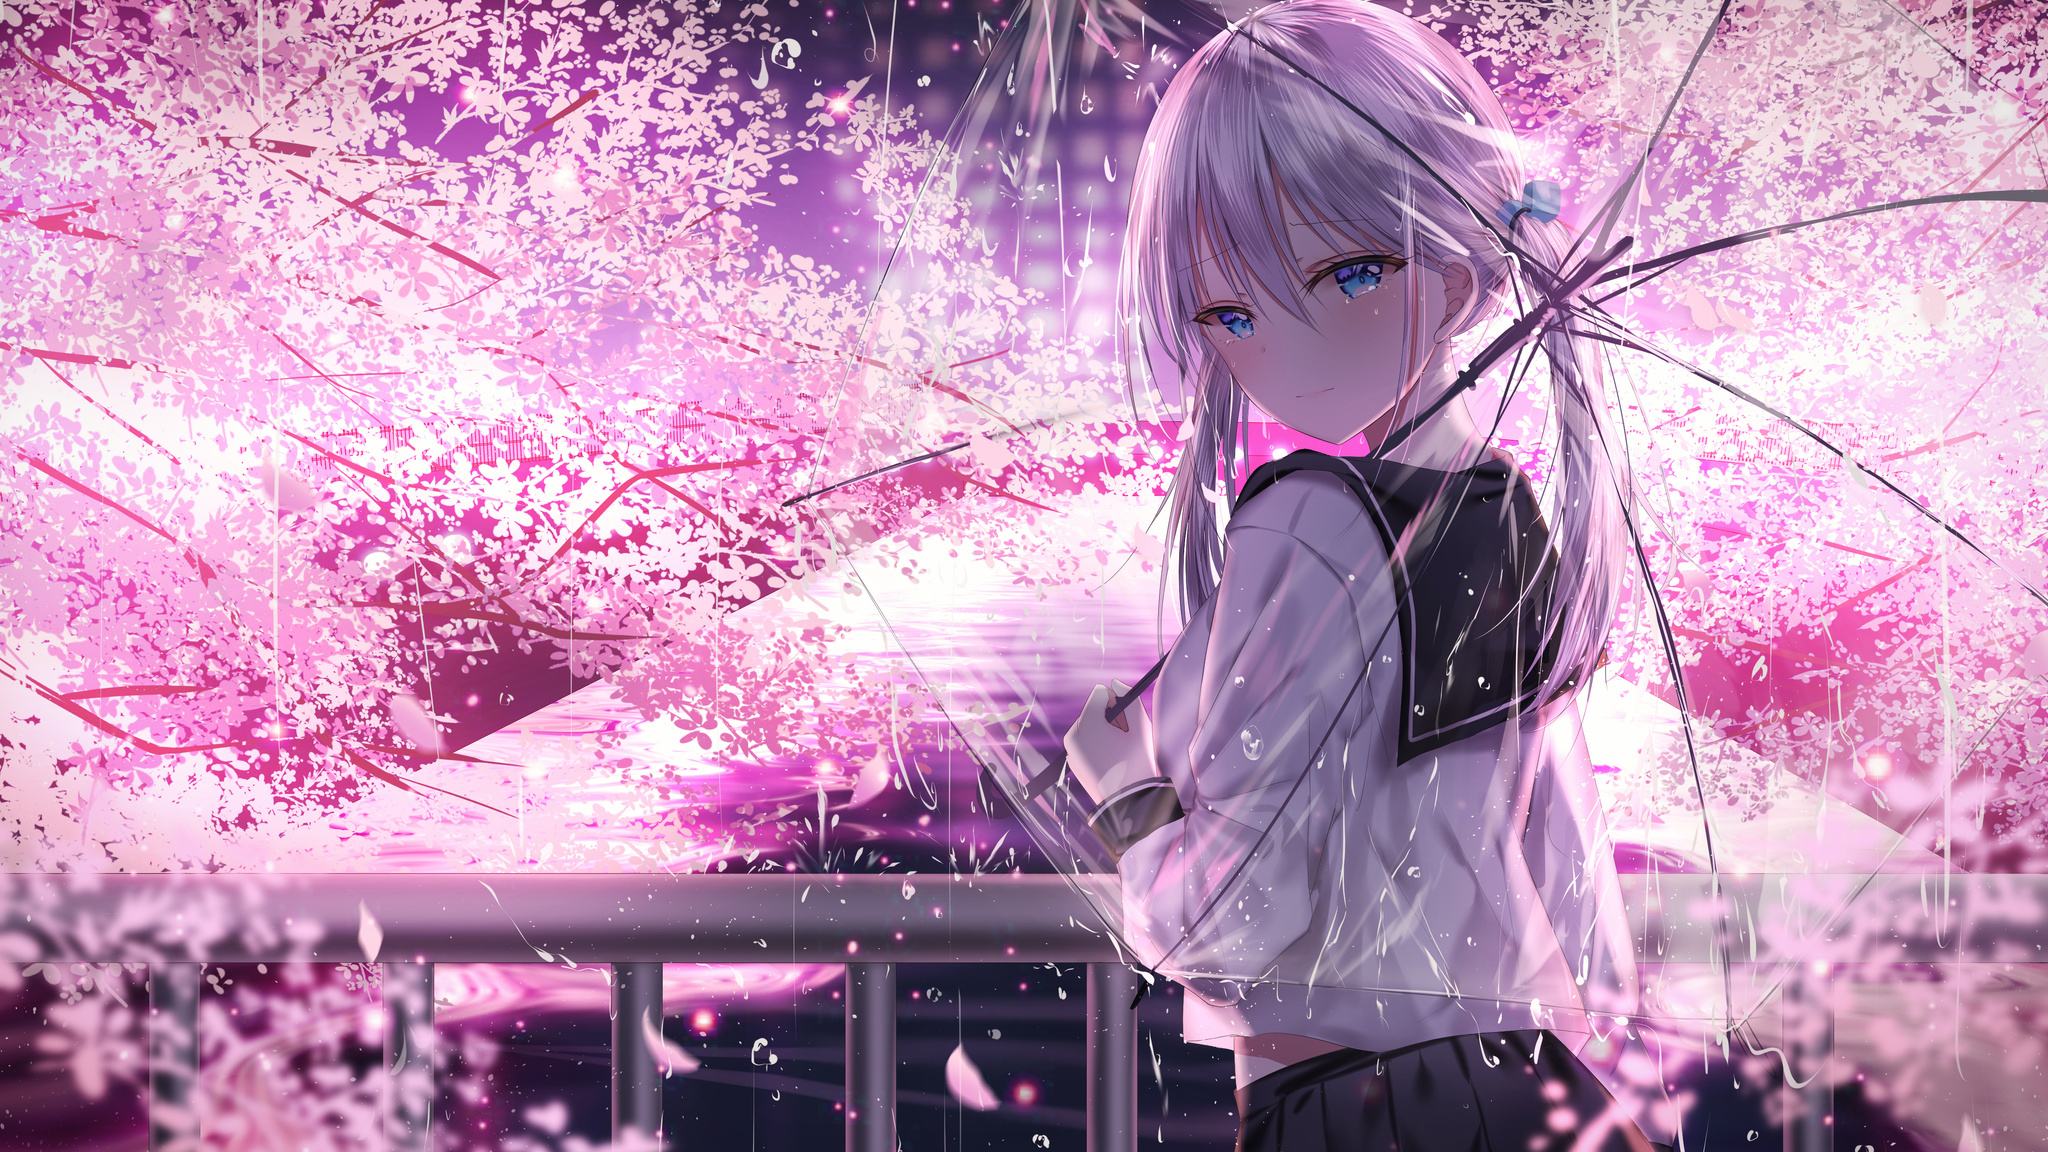 2048x1152 Anime Girl With Umbrella Outdoors Looking Back 5k